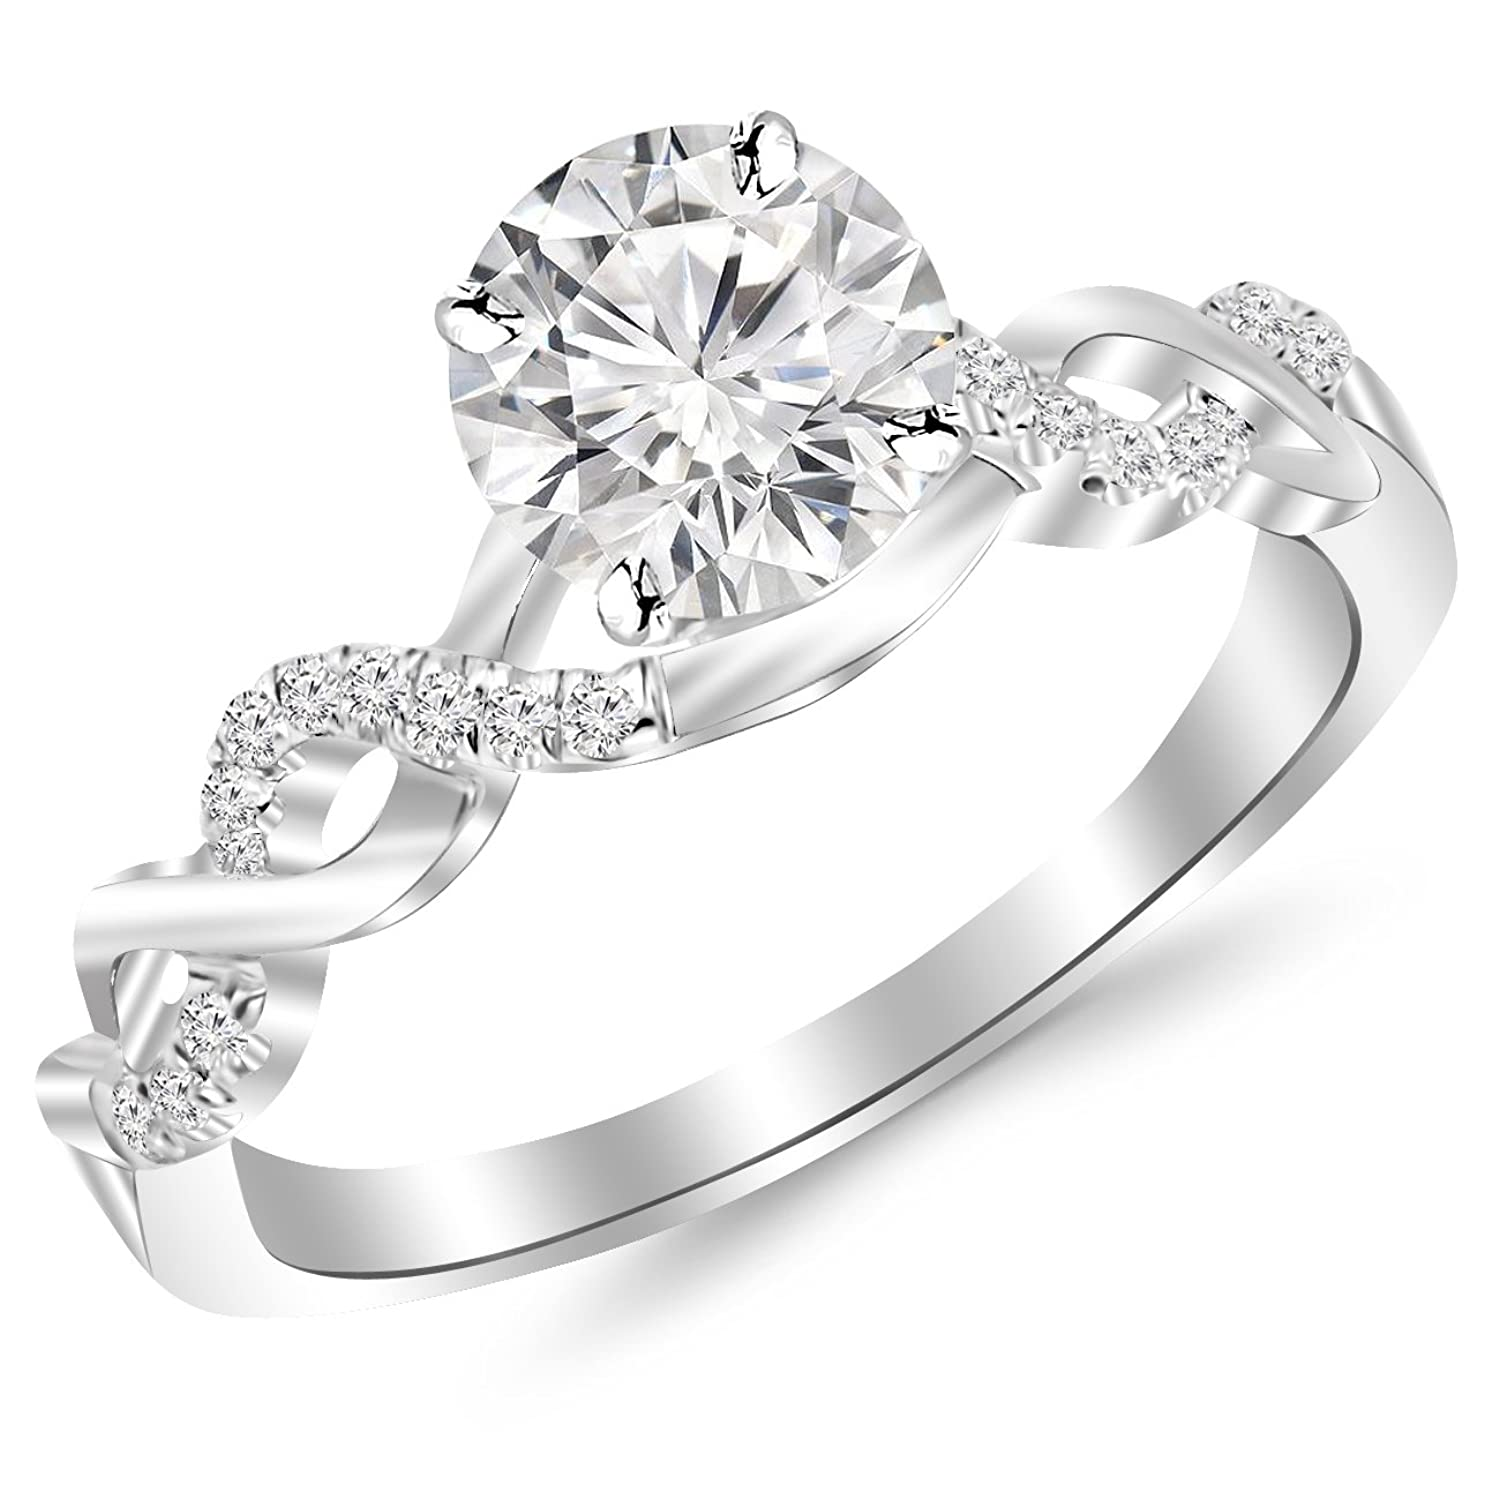 wedding engagement for elegant million of dollar rings dollars